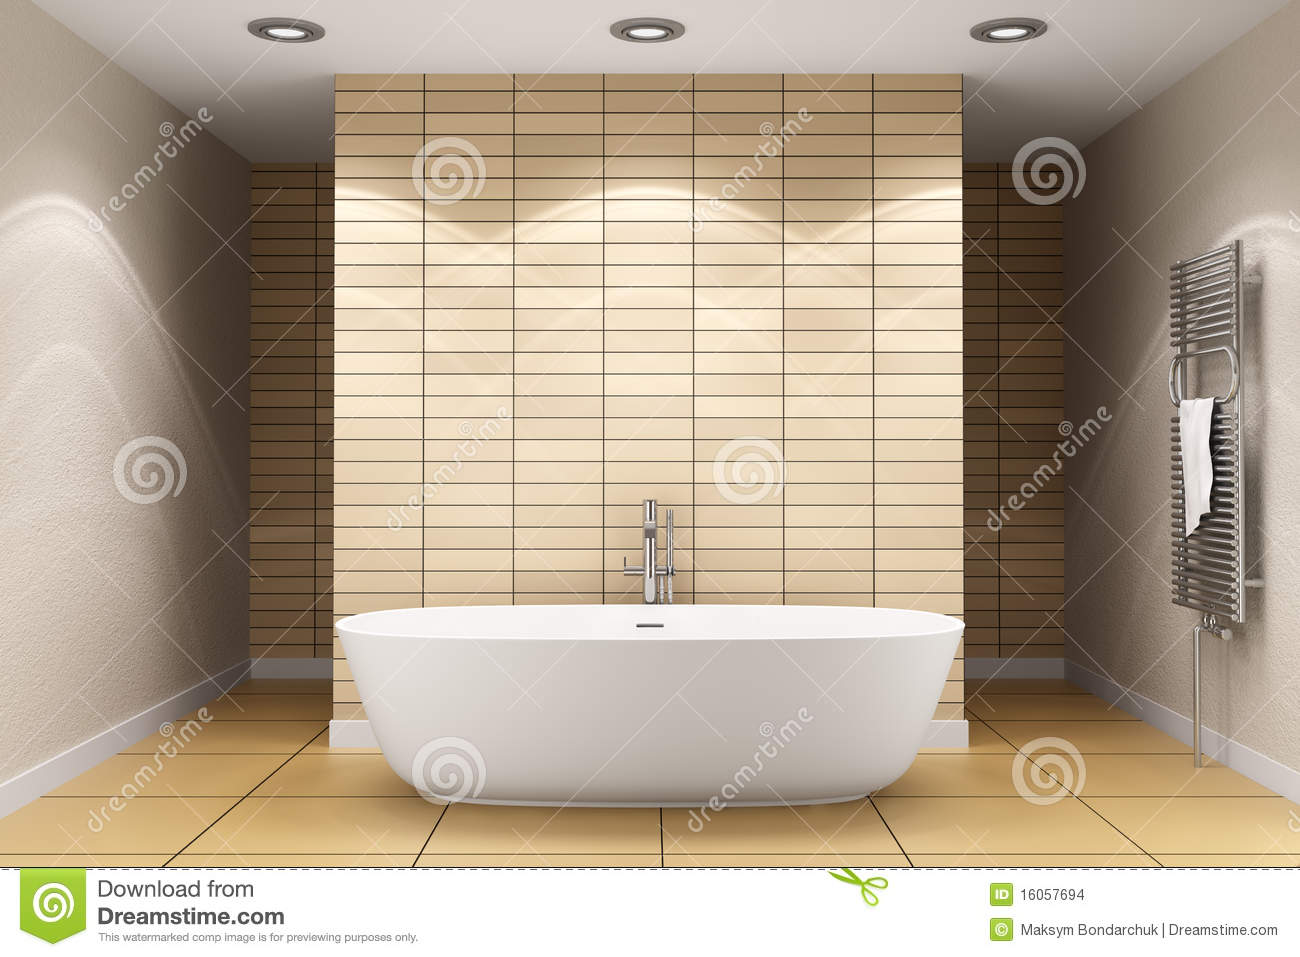 Modern Bathroom With Beige Tiles On Wall Stock Images - Image ...